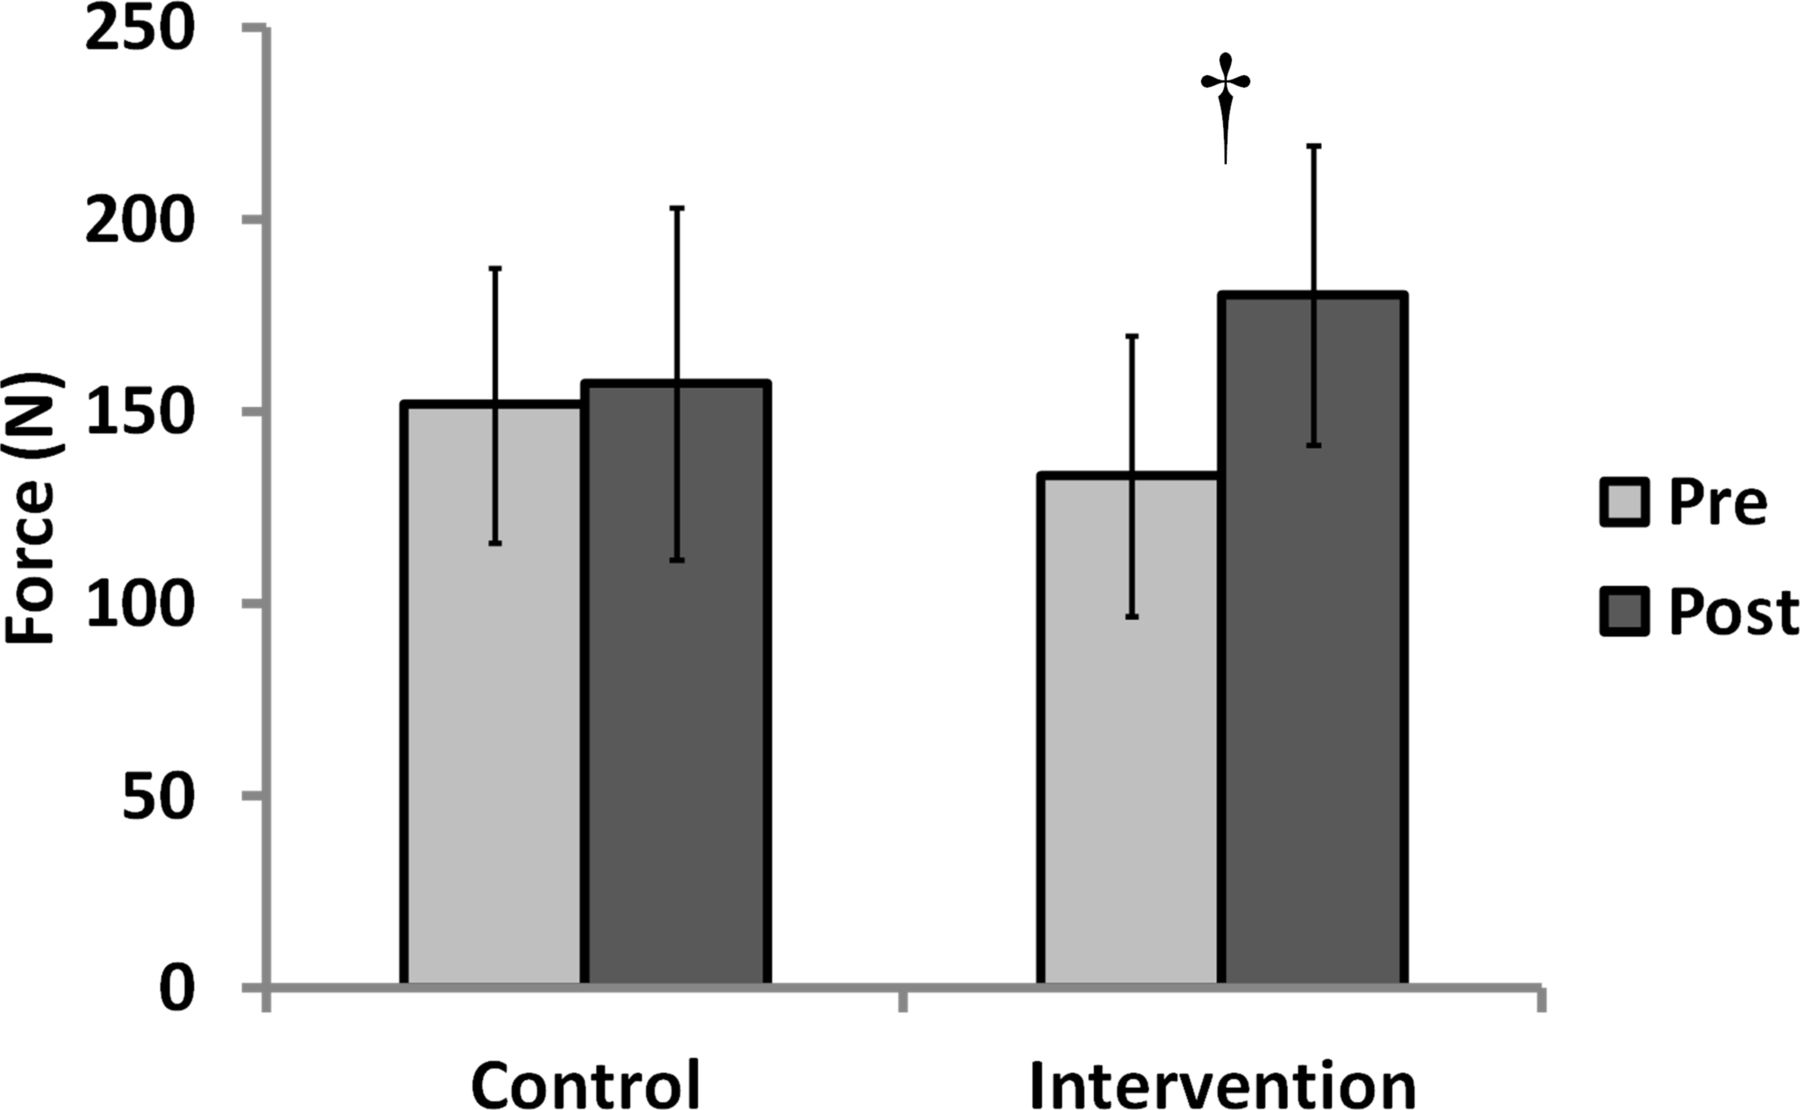 Effects Of An 8 Week Strength Training Intervention On Tibiofemoral Mechanics Shear Force And Bending Moment Diagrams Using Matlab Download Figure Open In New Tab